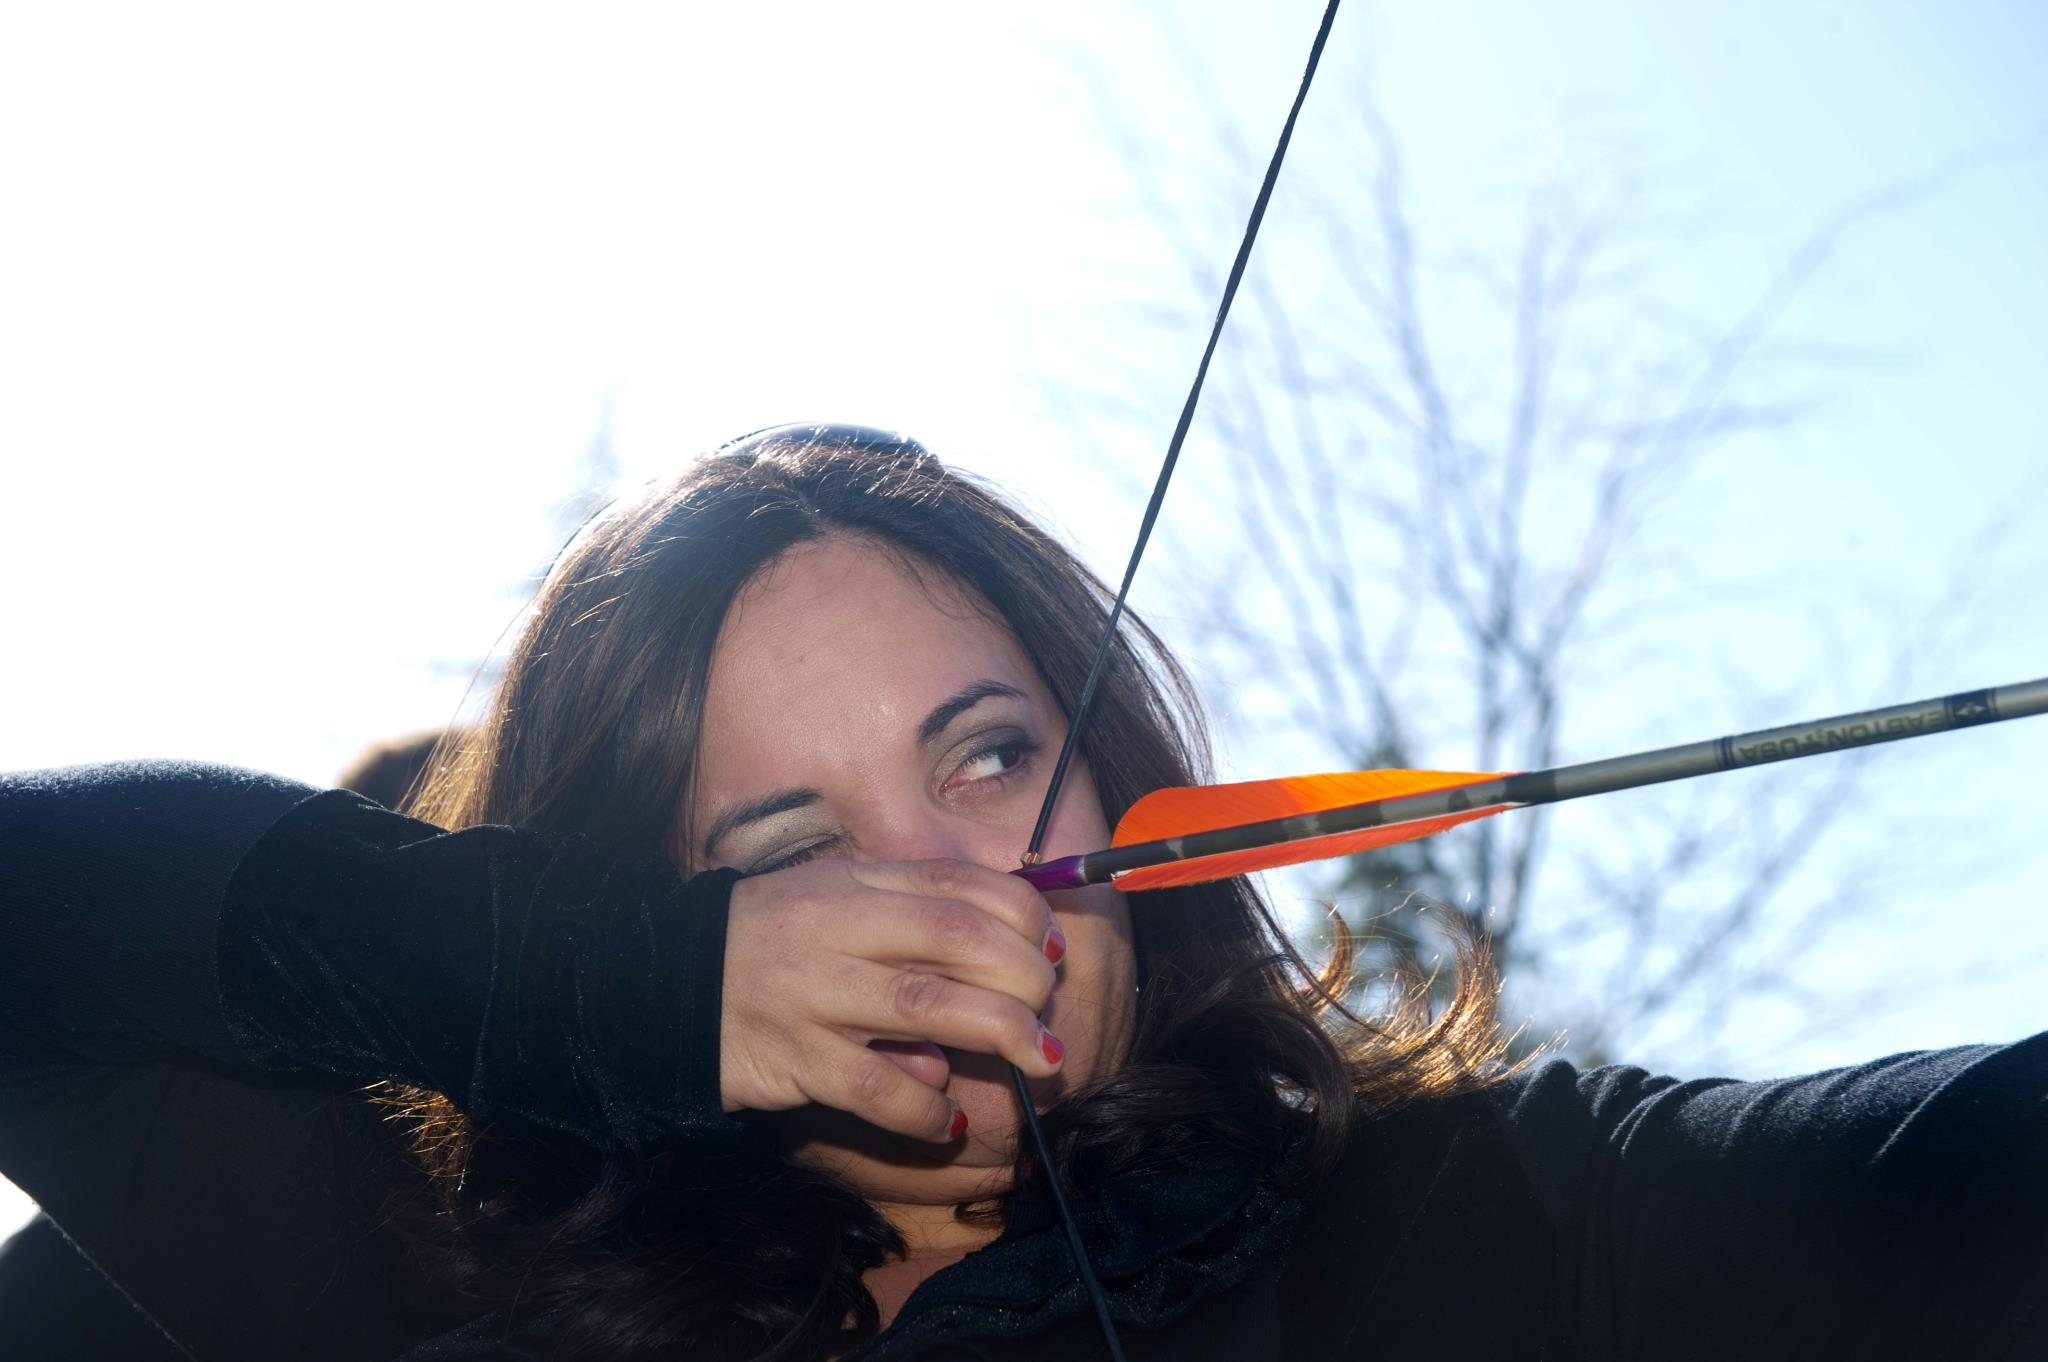 Bullseye! Archery 101 Inspired by Disney/Pixar's Brave